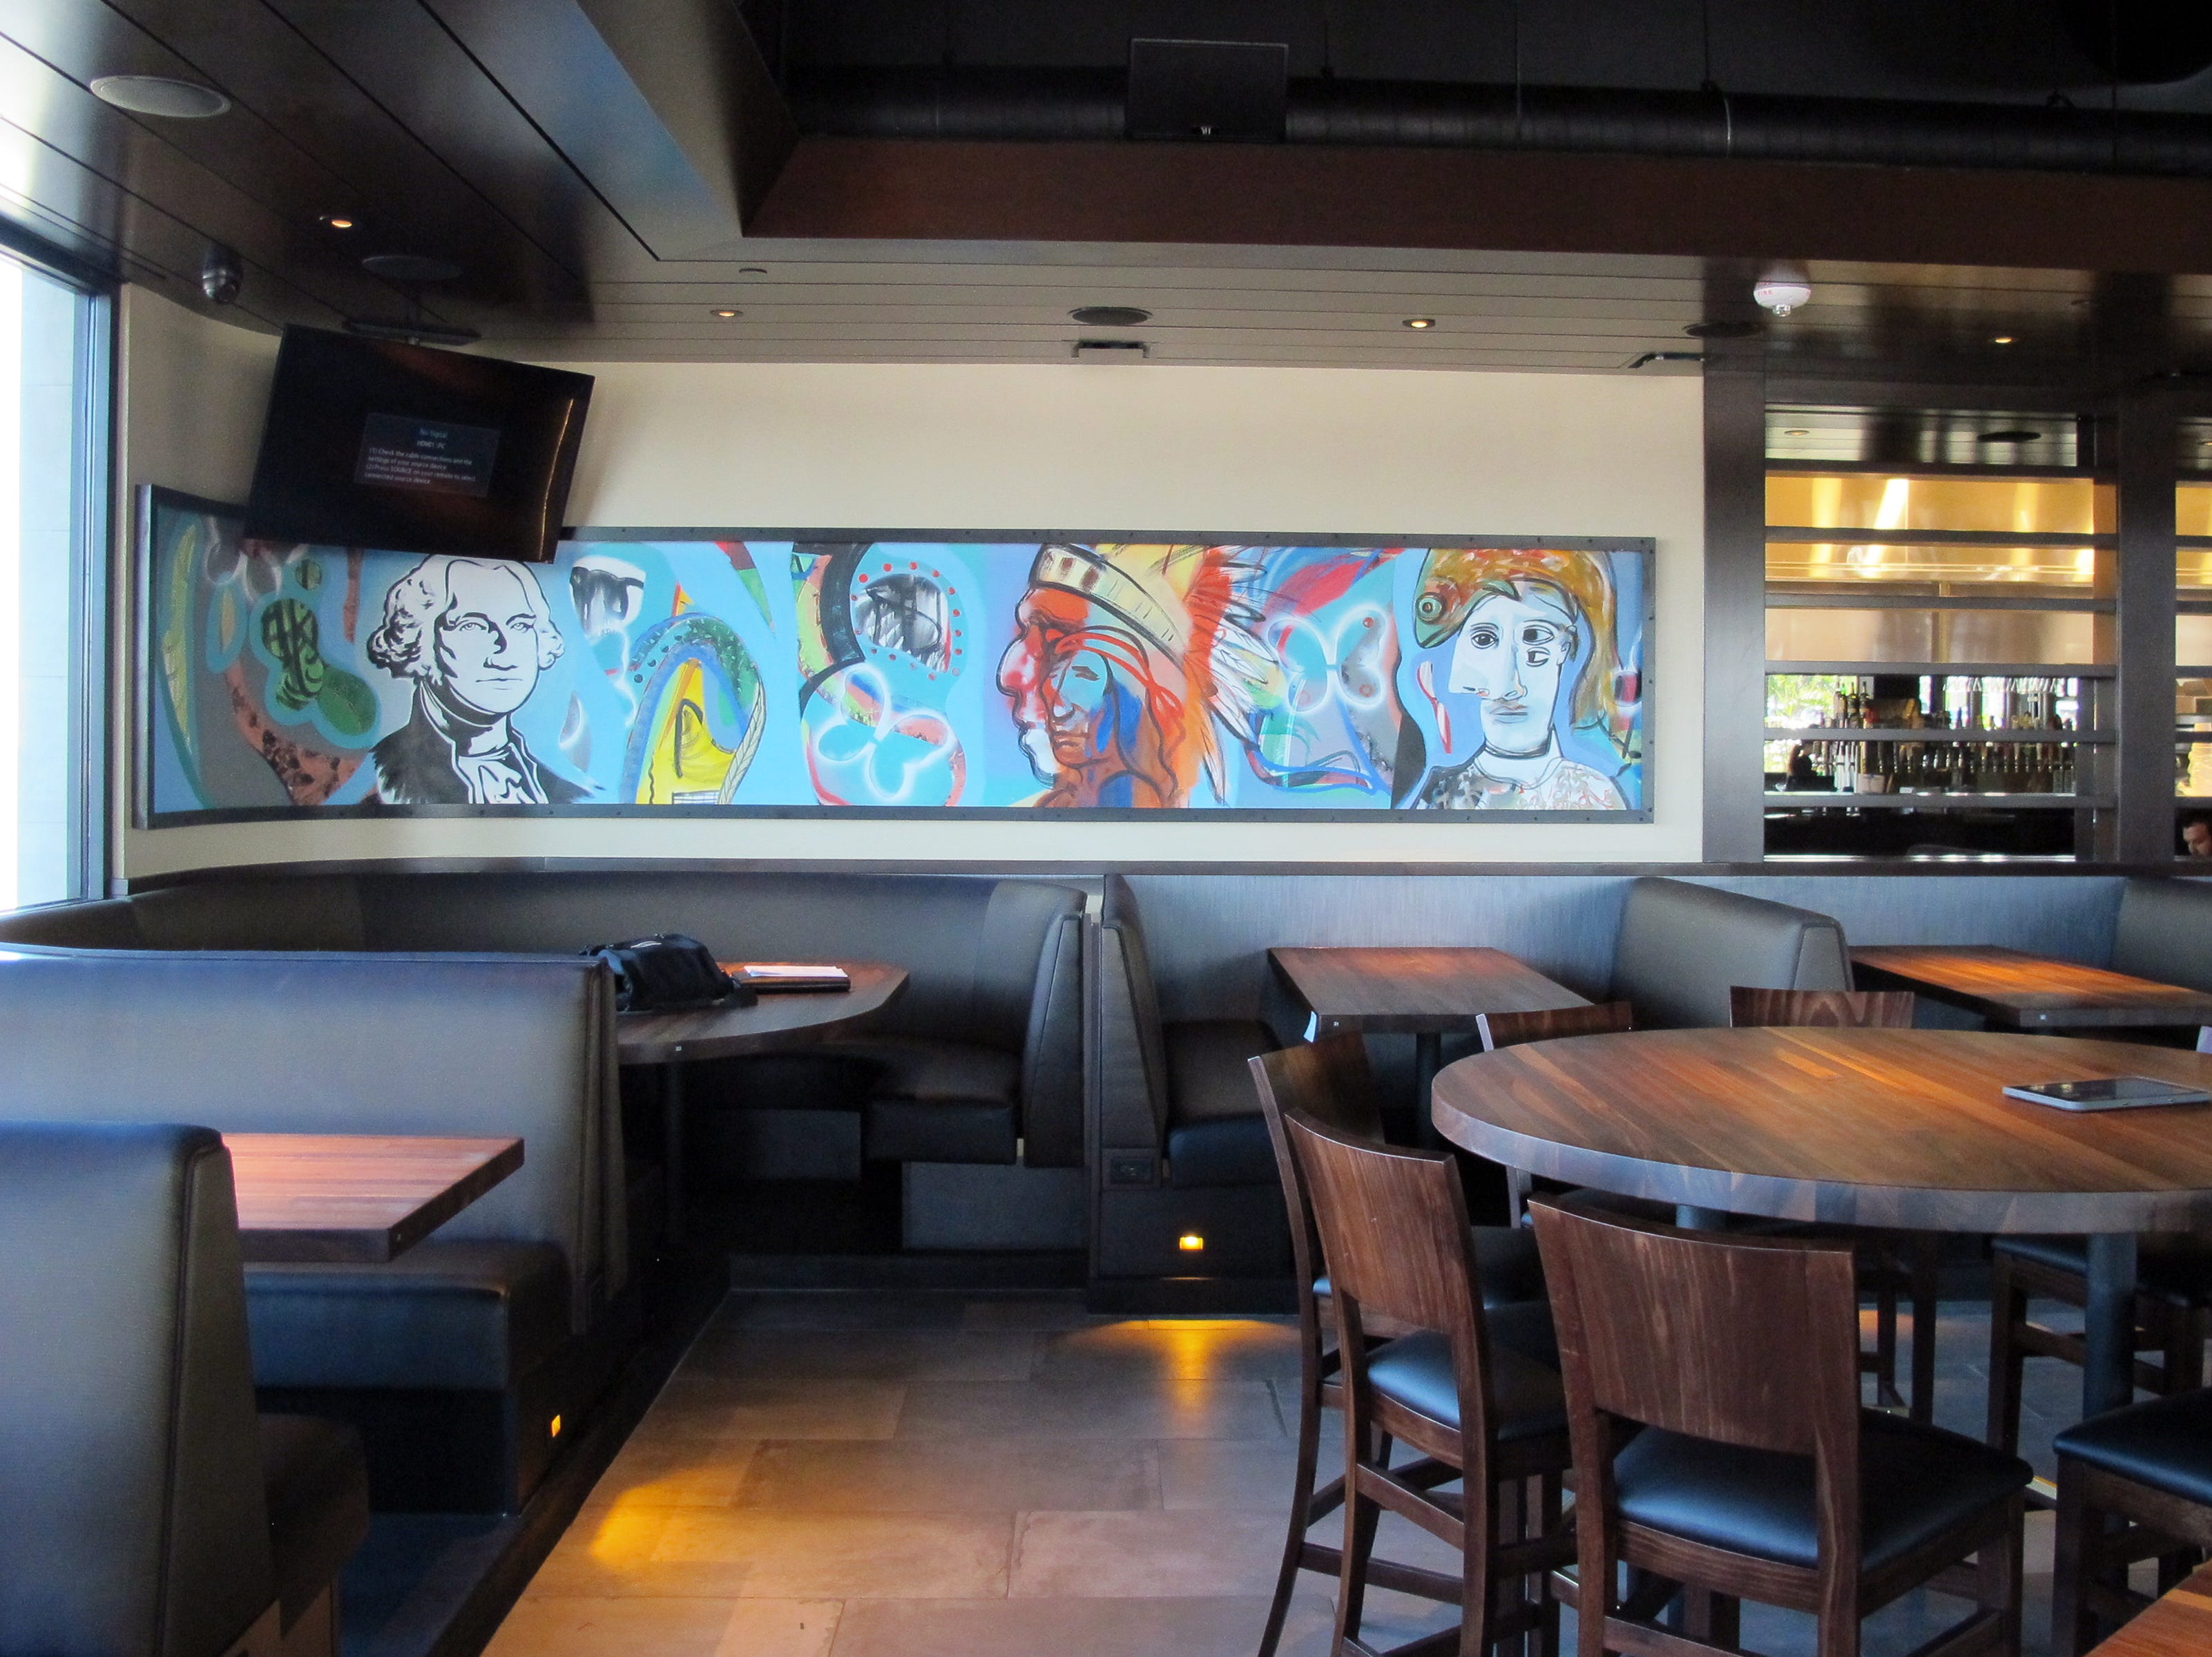 Modern art decorates the dining room at the new Yard House in Naples.